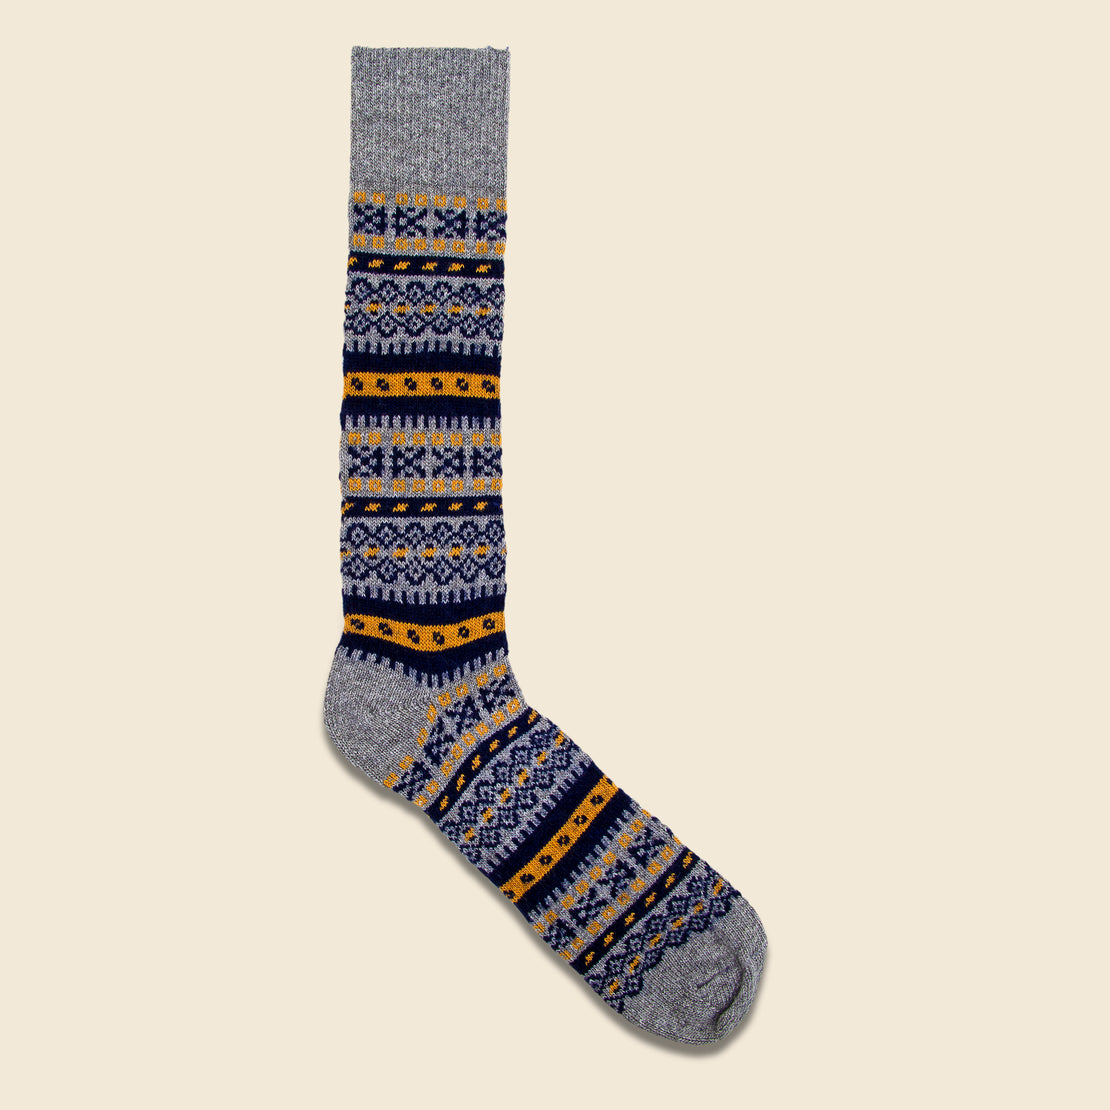 American Trench Fair Isle Crew Sock - Grey/Navy/Gold